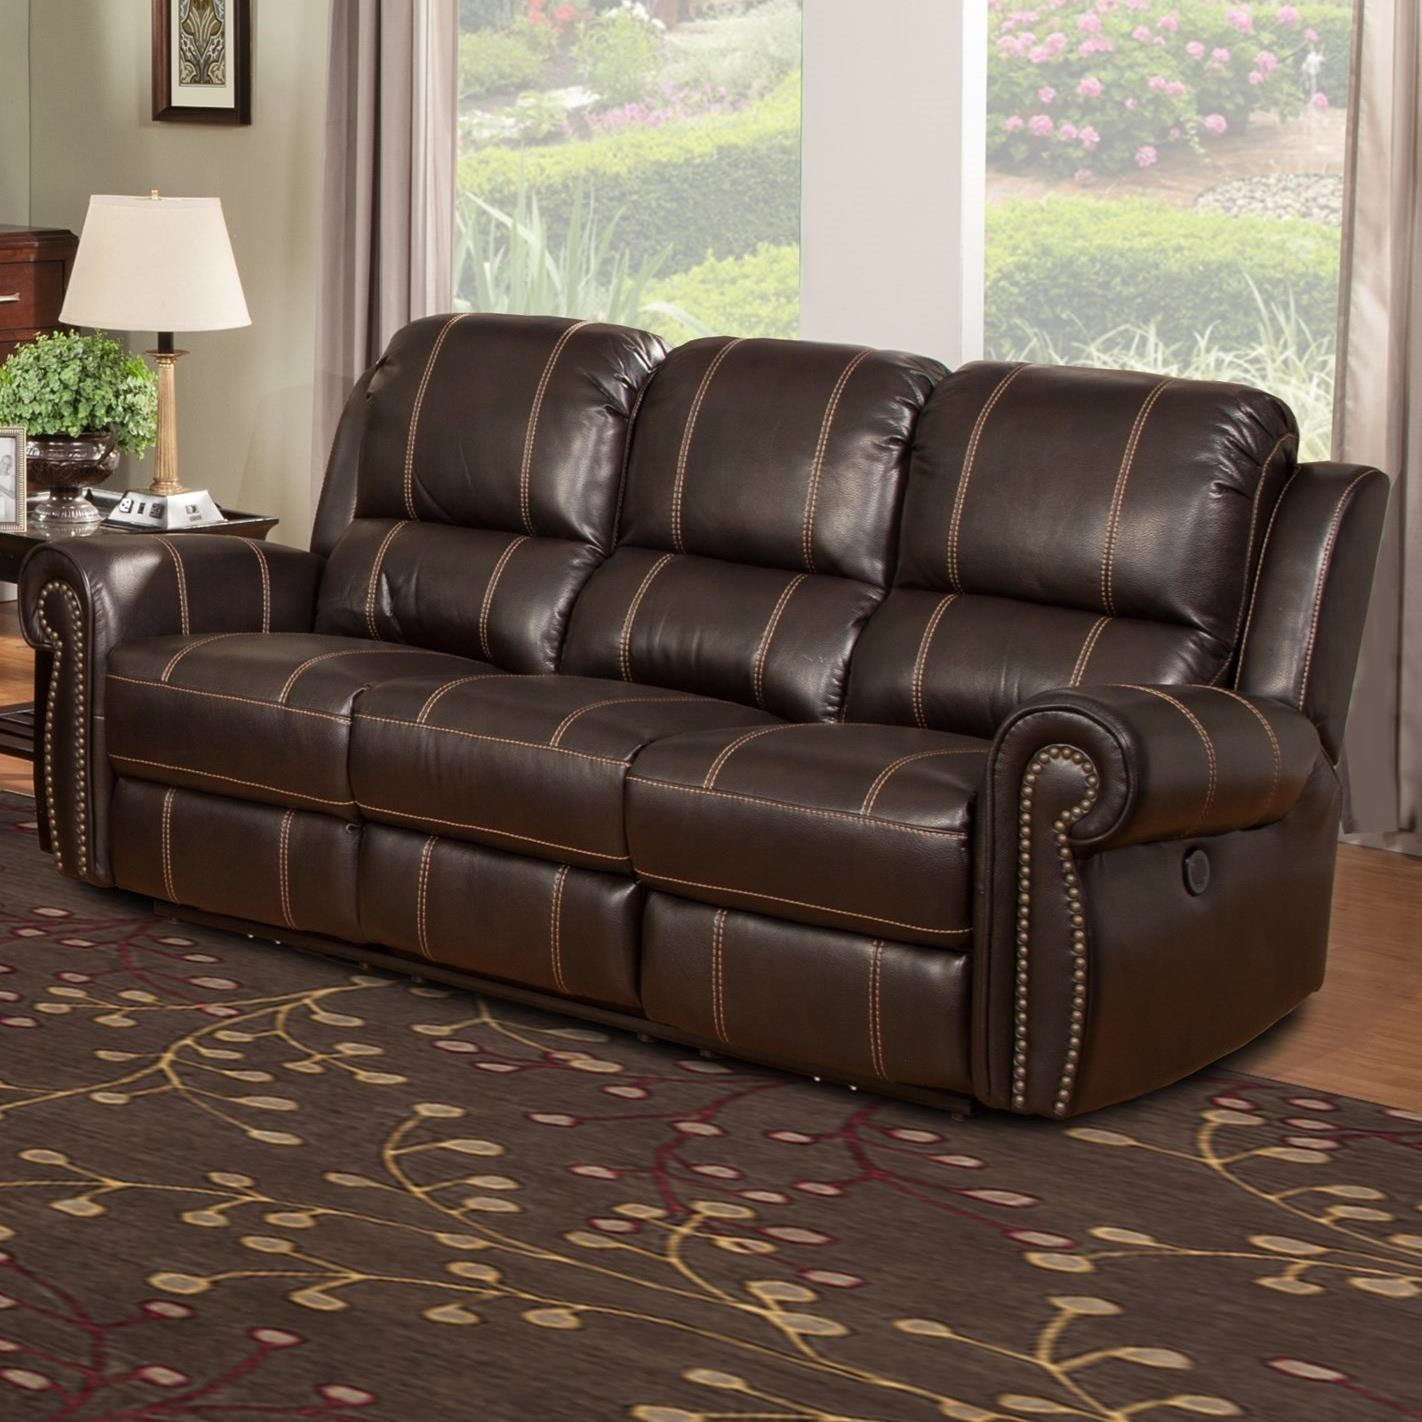 Parker Living Webber Traditional Power Reclining Sofa With Full Chaise  Cushion   Adcock Furniture   Reclining Sofas